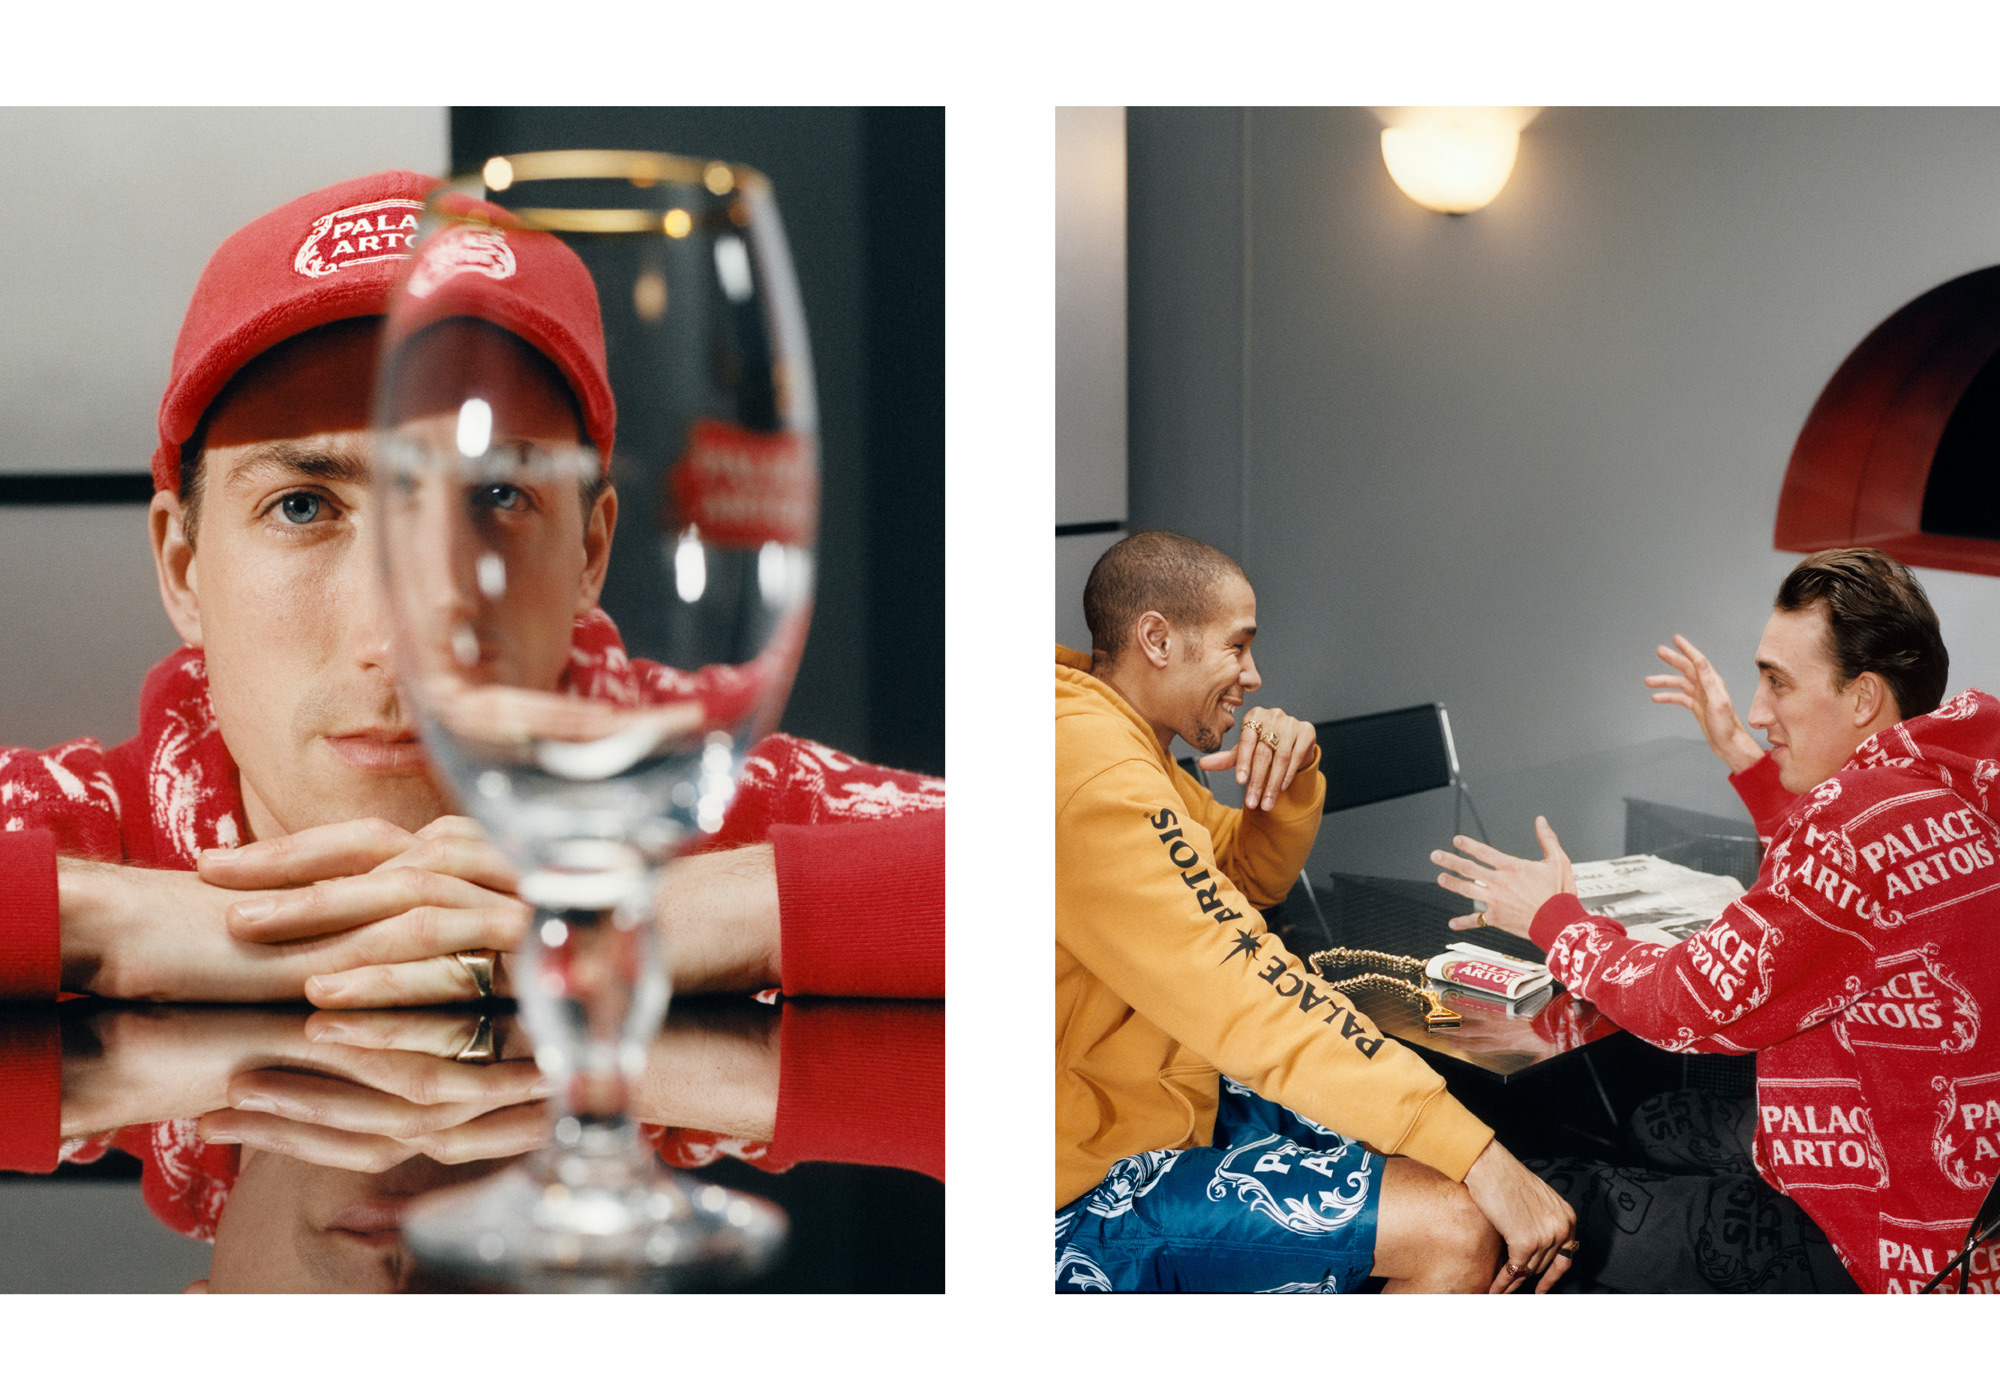 palace-stella-artois-collaboration-21-spring-release-20210220